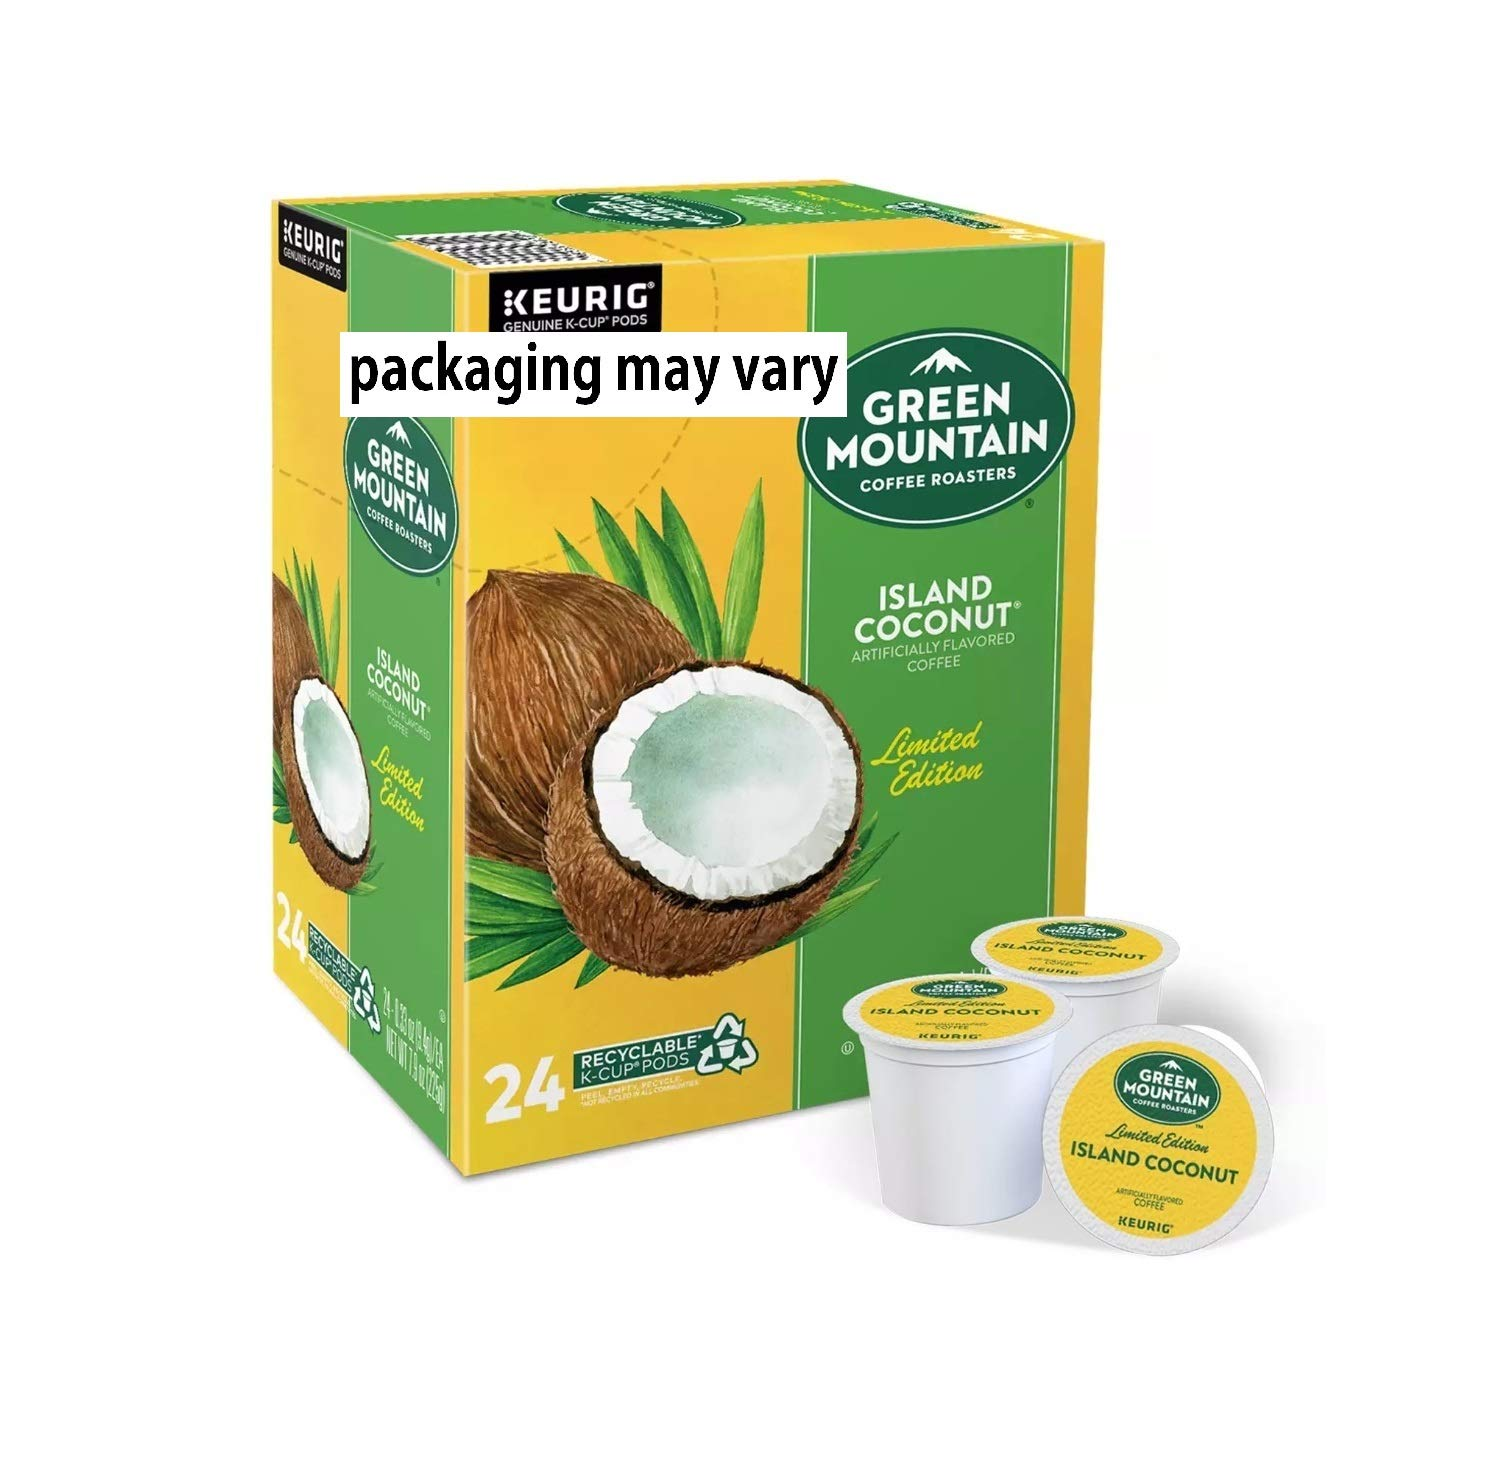 Green Mountain Coffee Pods K-Cups For Keurig Machines Flavored K Cup (All Count Fresh Capsules) Light / Medium / Dark Roast Long Expiry ALL FLAVORS (24 K-Cups Island Coconut Coffee)